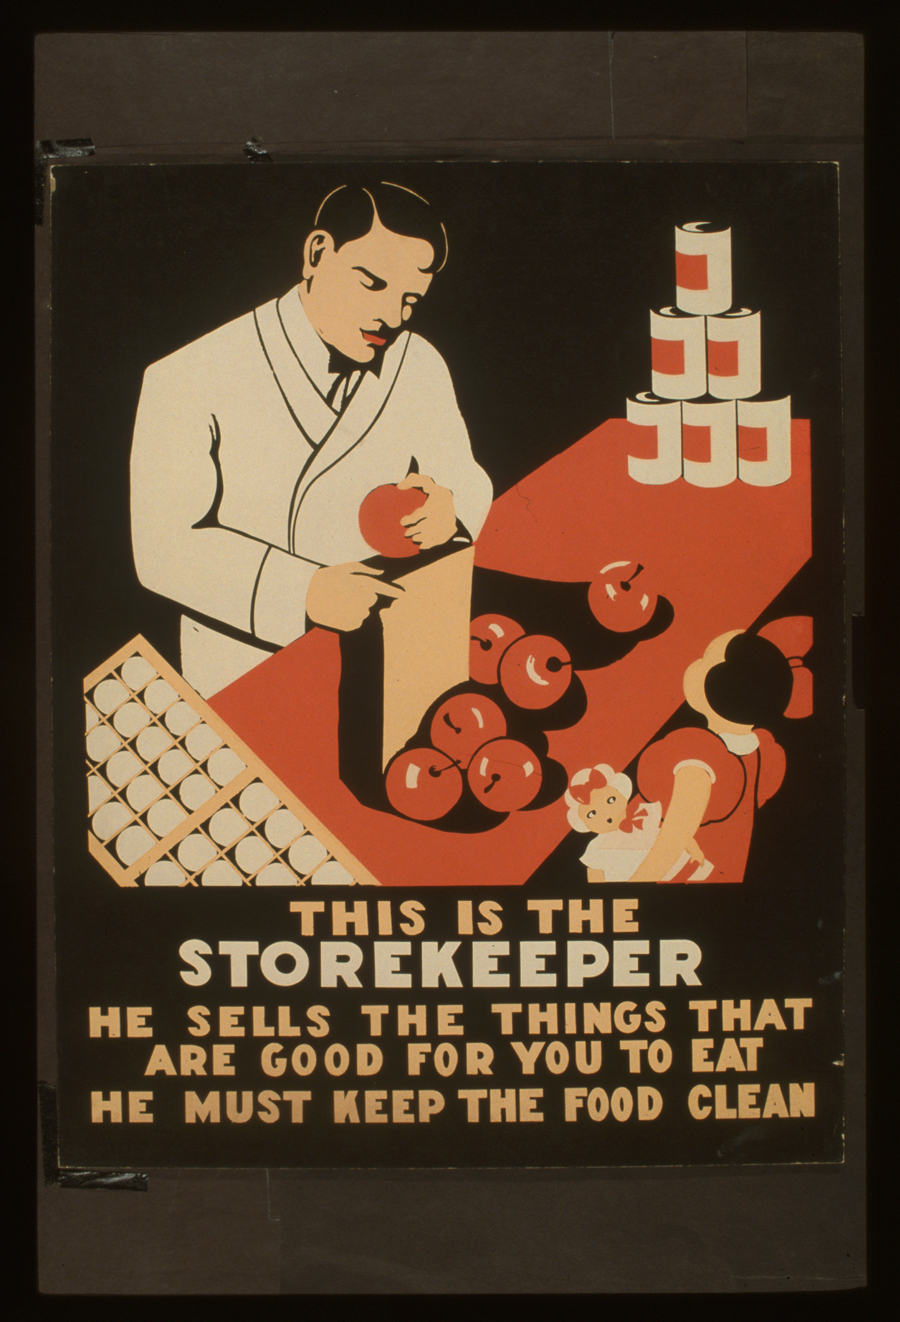 WPA posters at Library of Congress